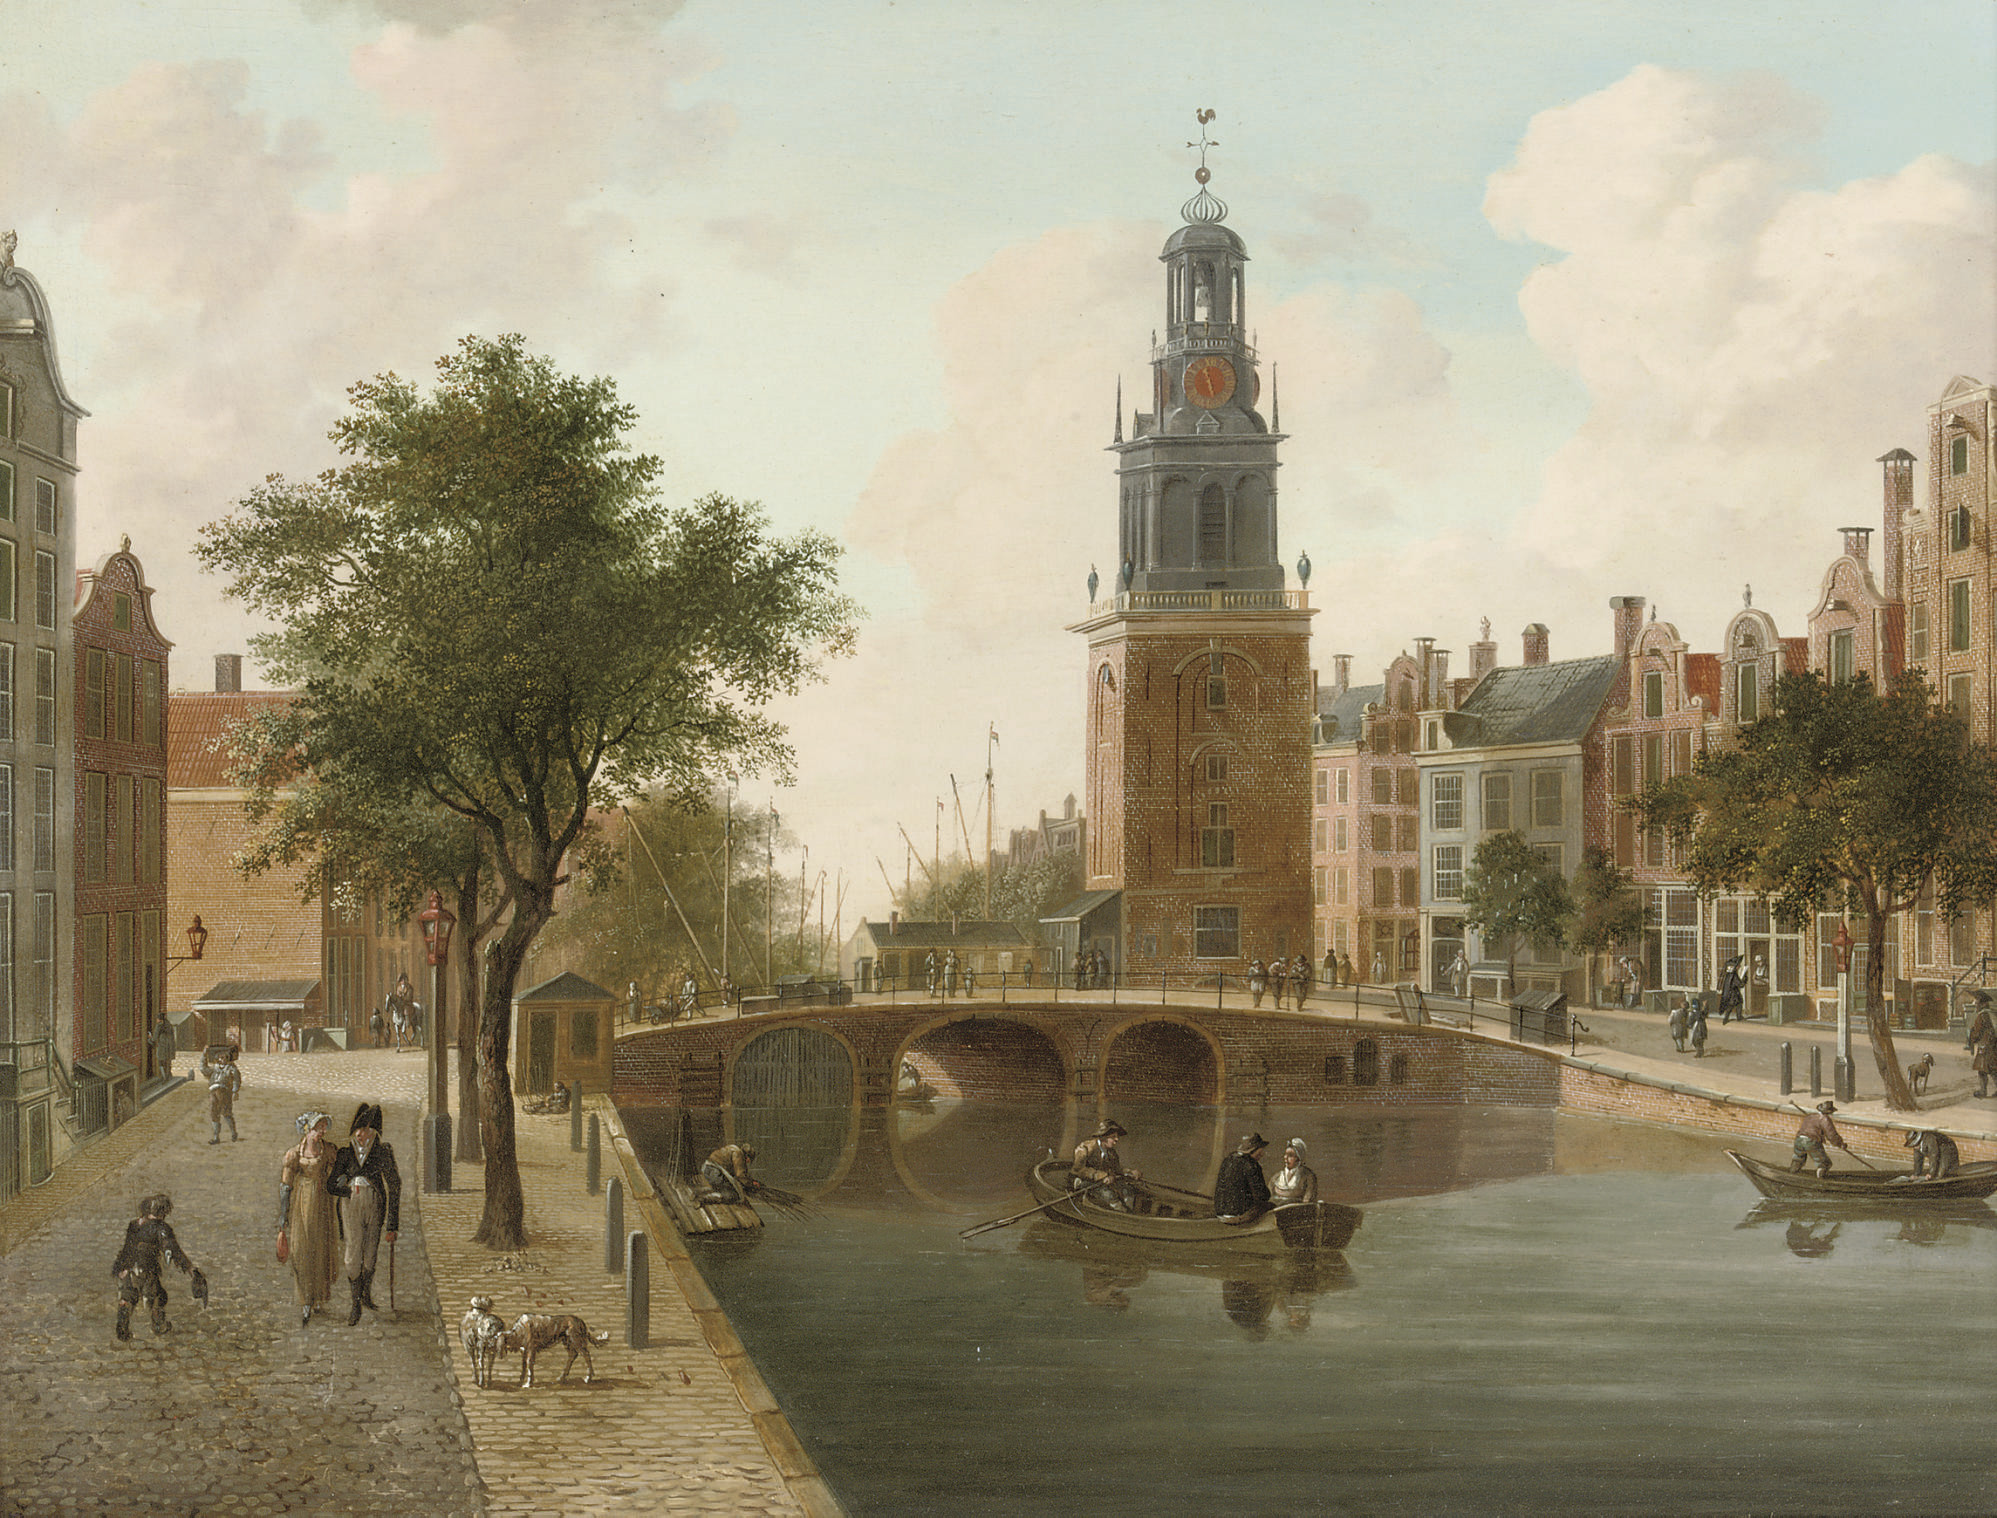 The Singel towards the Torensluis and the Jan Roodenpoort, Amsterdam